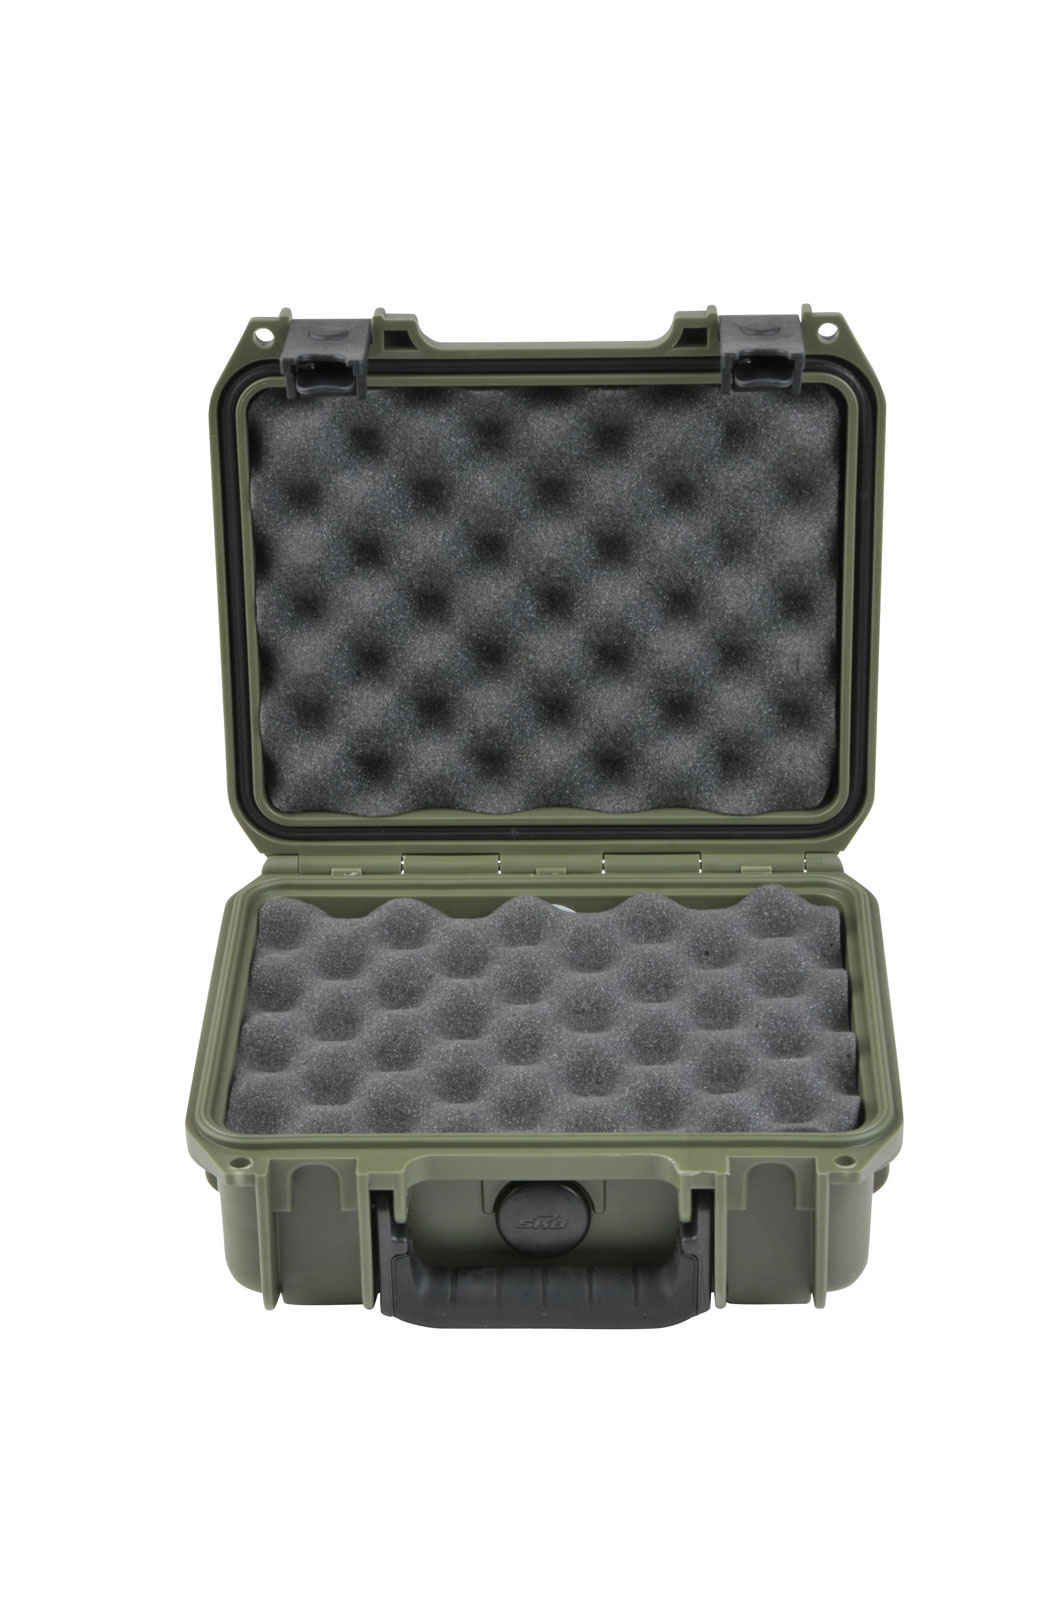 SPORTS GUNS PISTOL CASES 3I-0907-4M-L GREEN